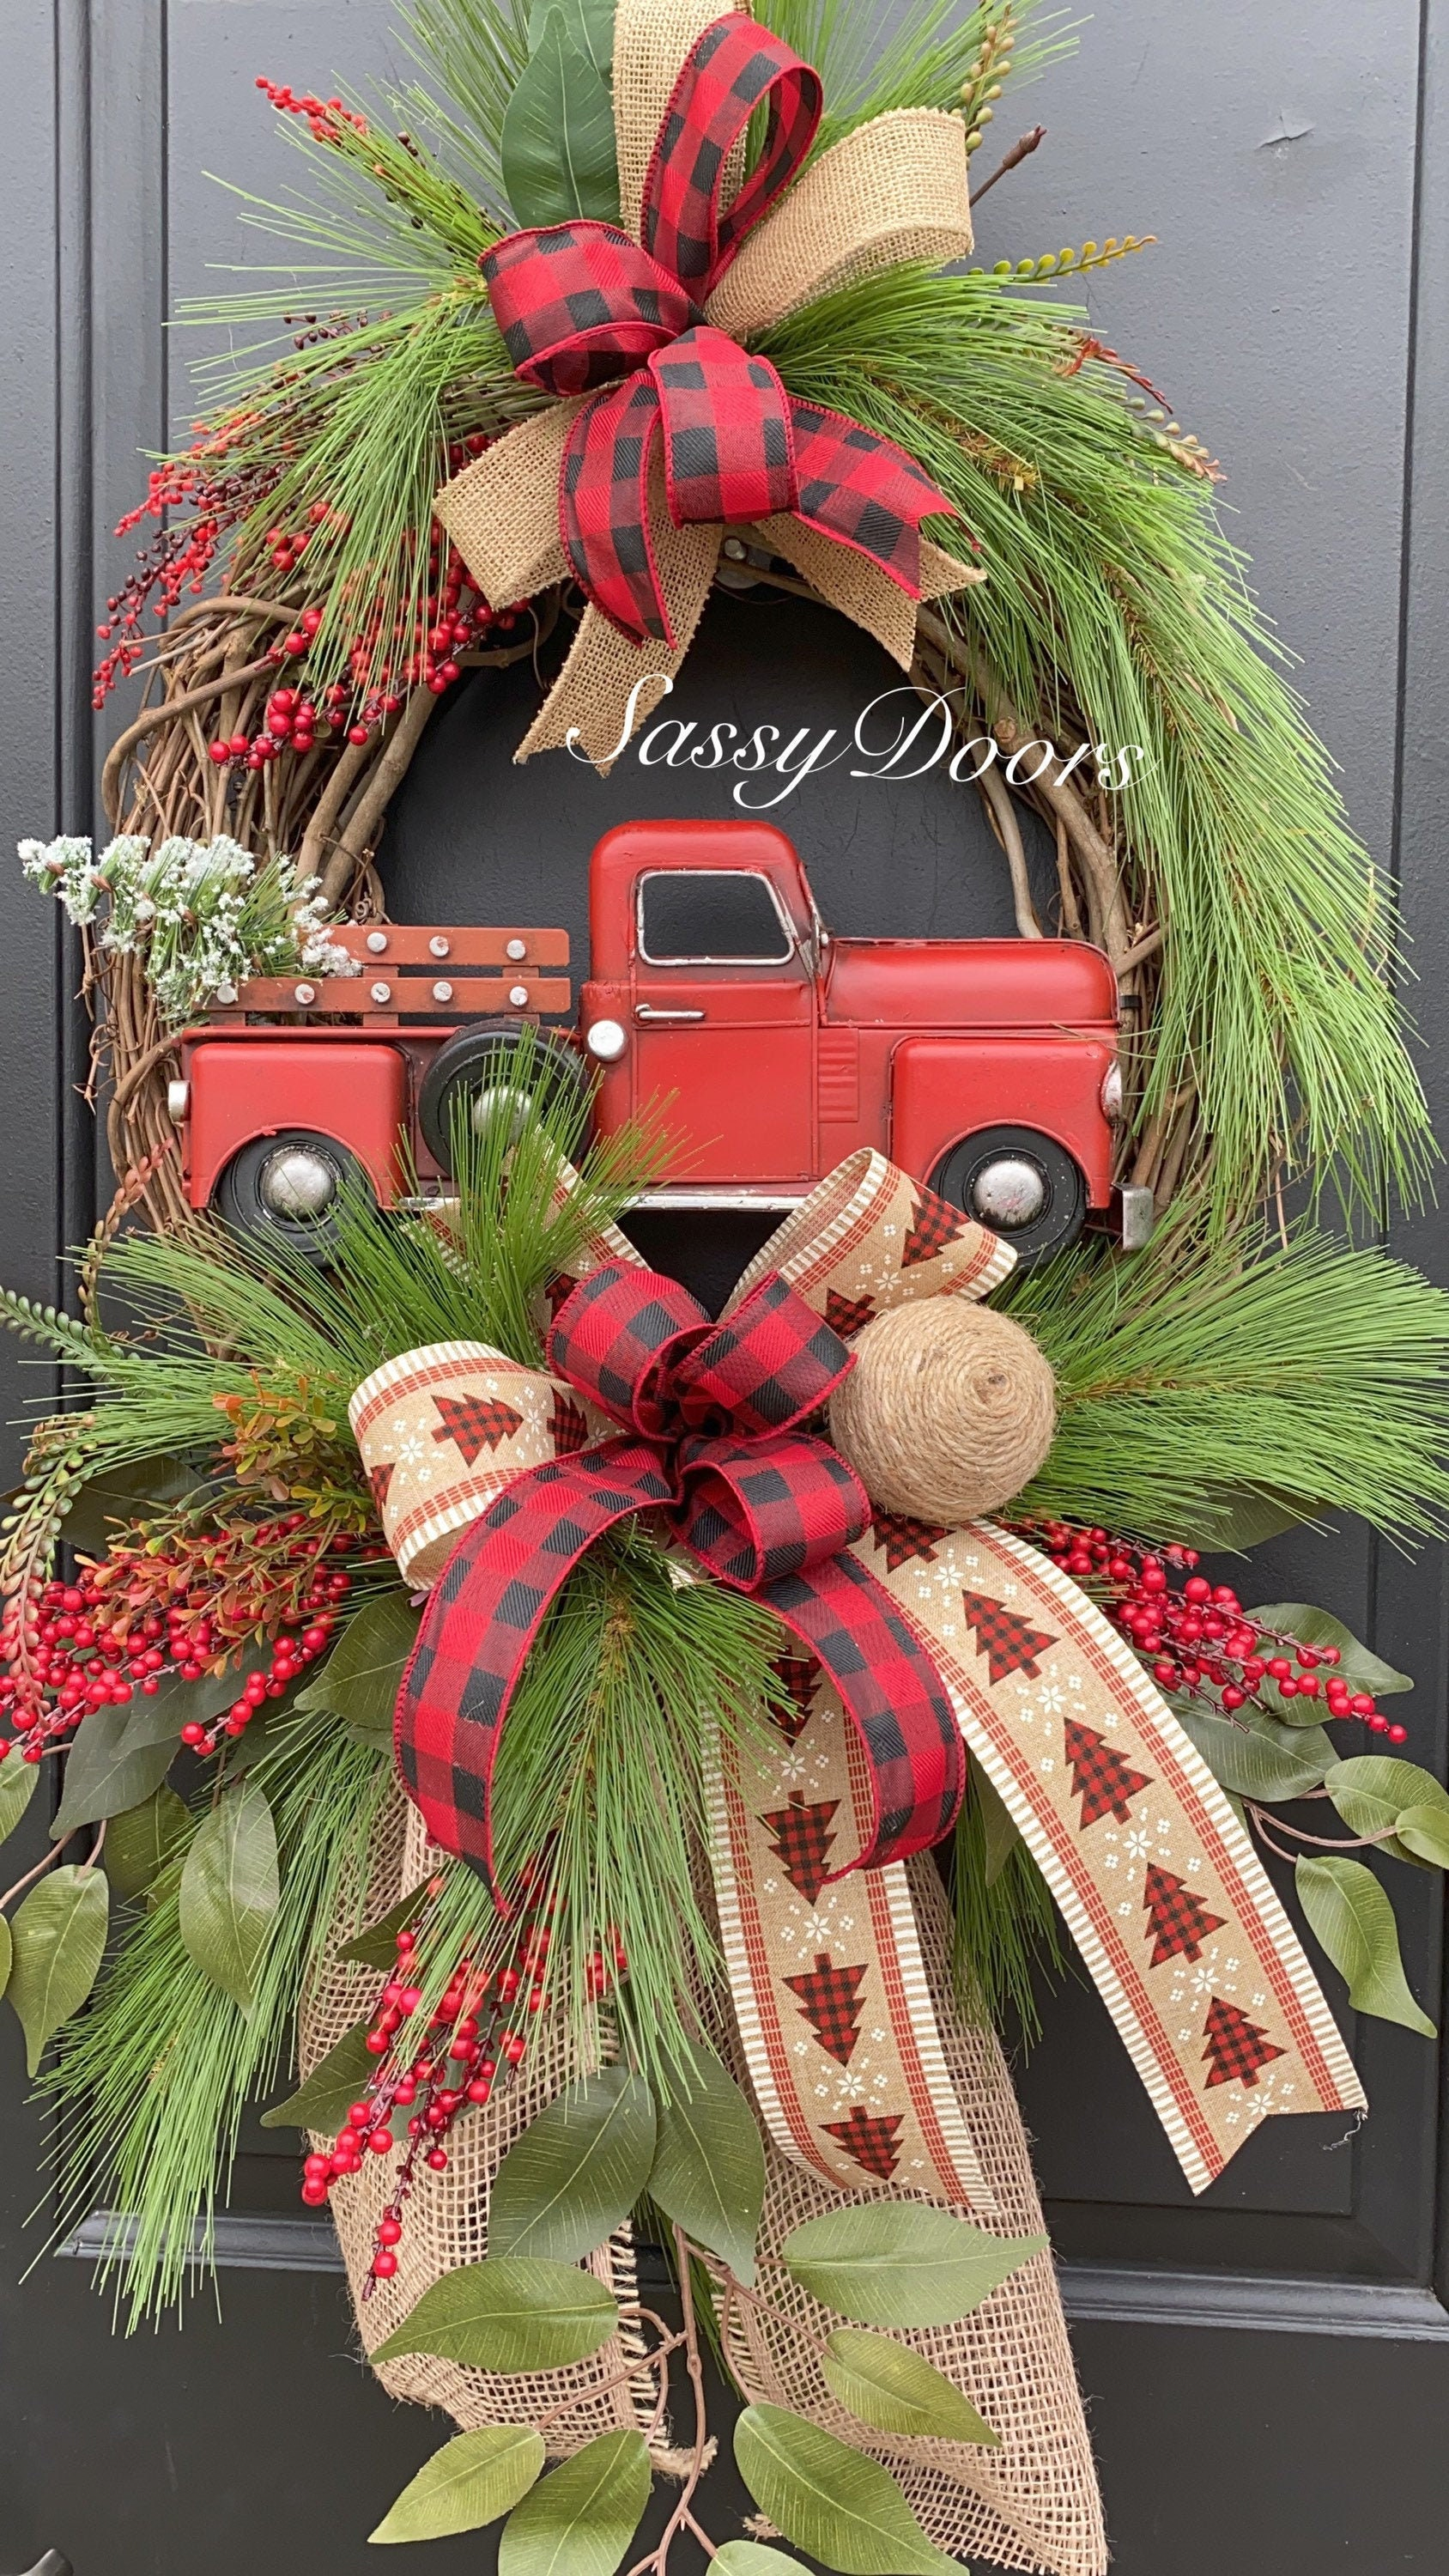 Red Truck Christmas Wreath Grapevine Christmas Wreath Rustic Wreath Farmhouse Christmas Wreath Sassy Doors Wreath